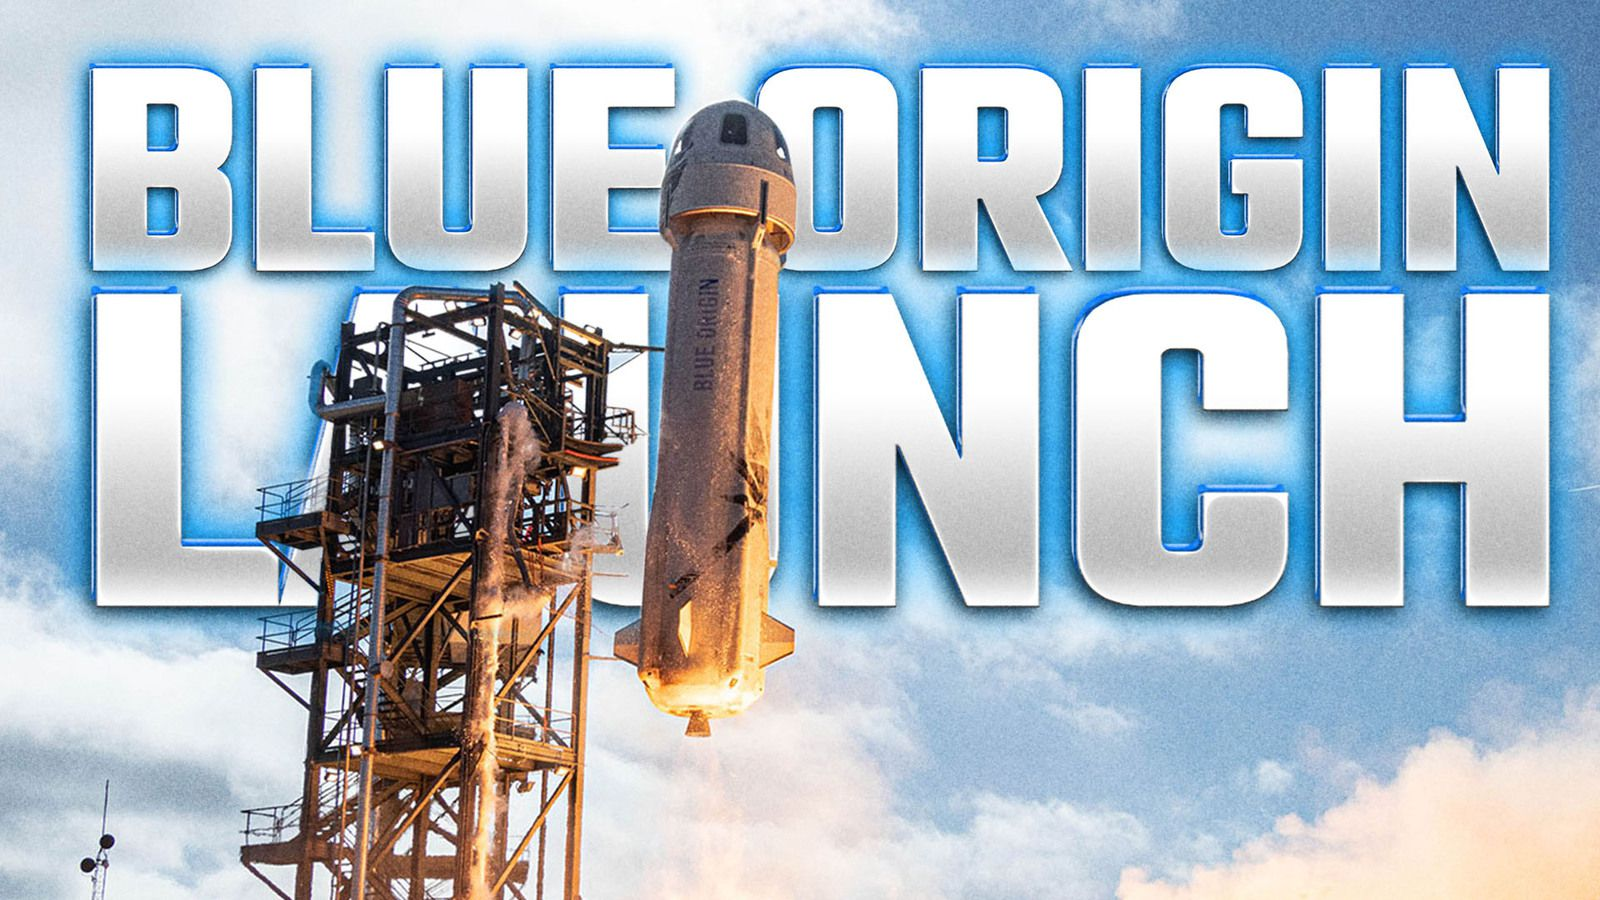 JEFF BEZOS Travels To Space With Blue Origin Launch. What will happen ?(🔴 LIVE)